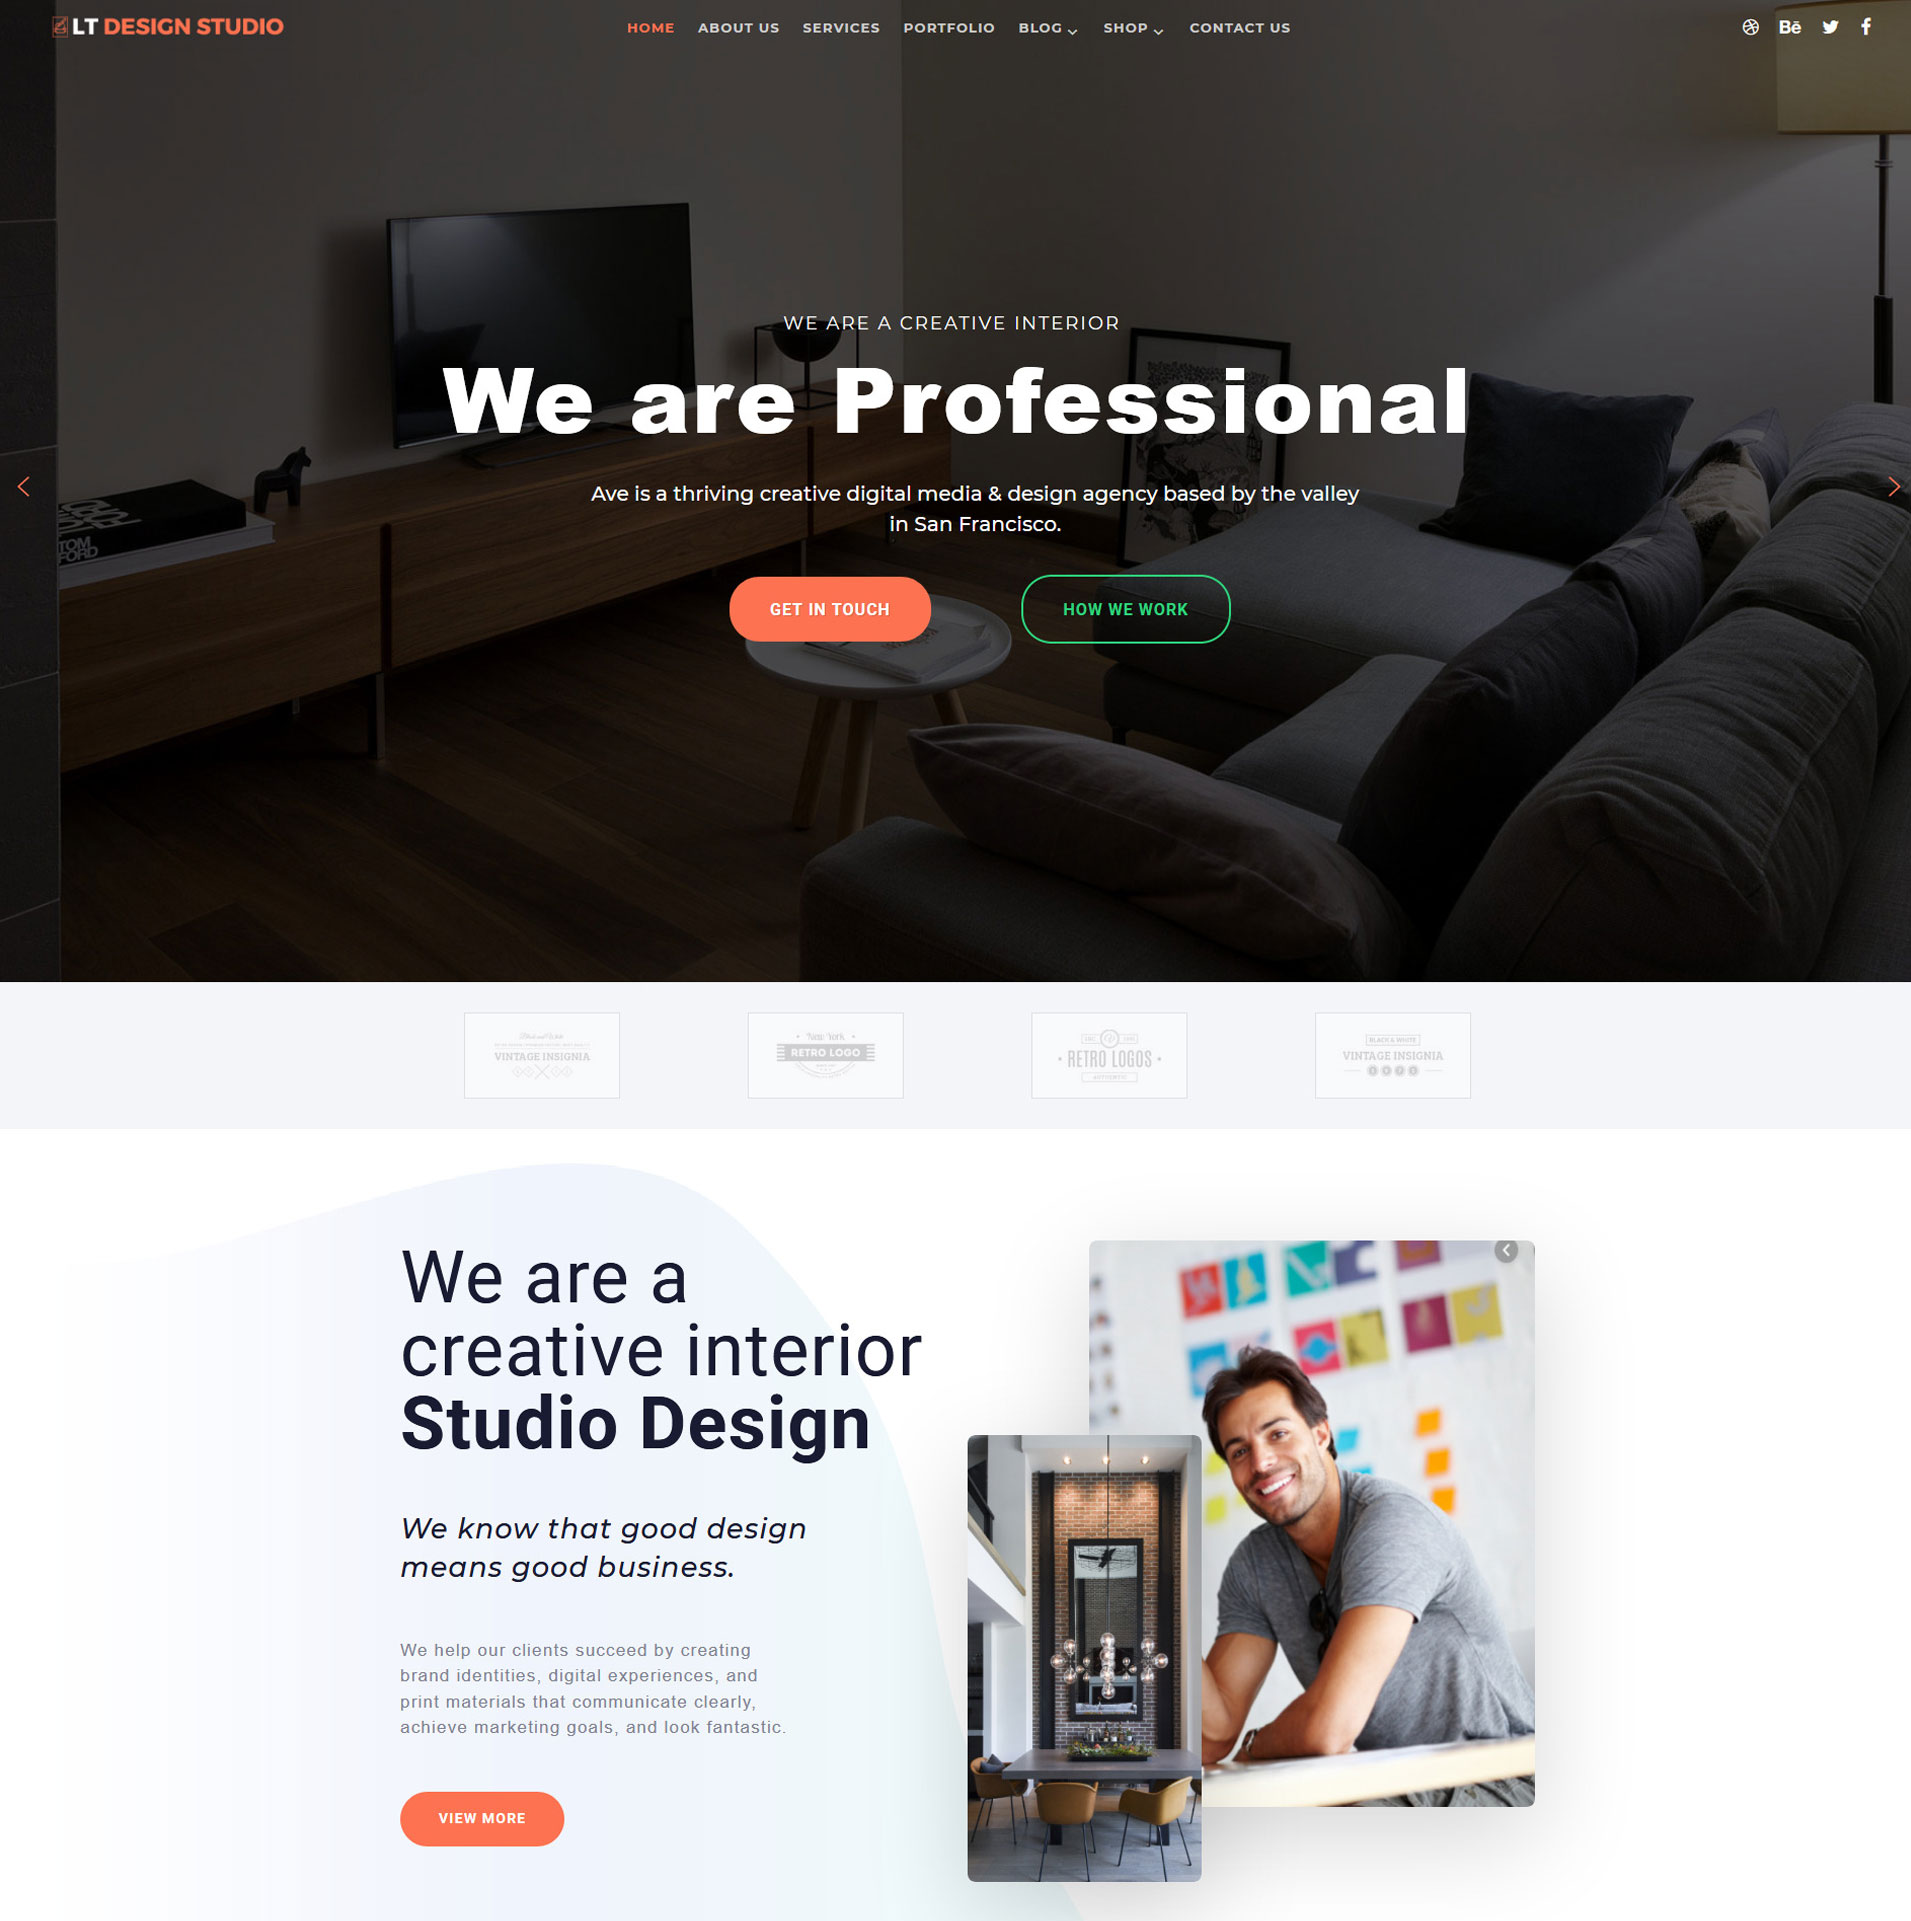 lt-design-studio-free-responsive-wordpress-theme-screenshot